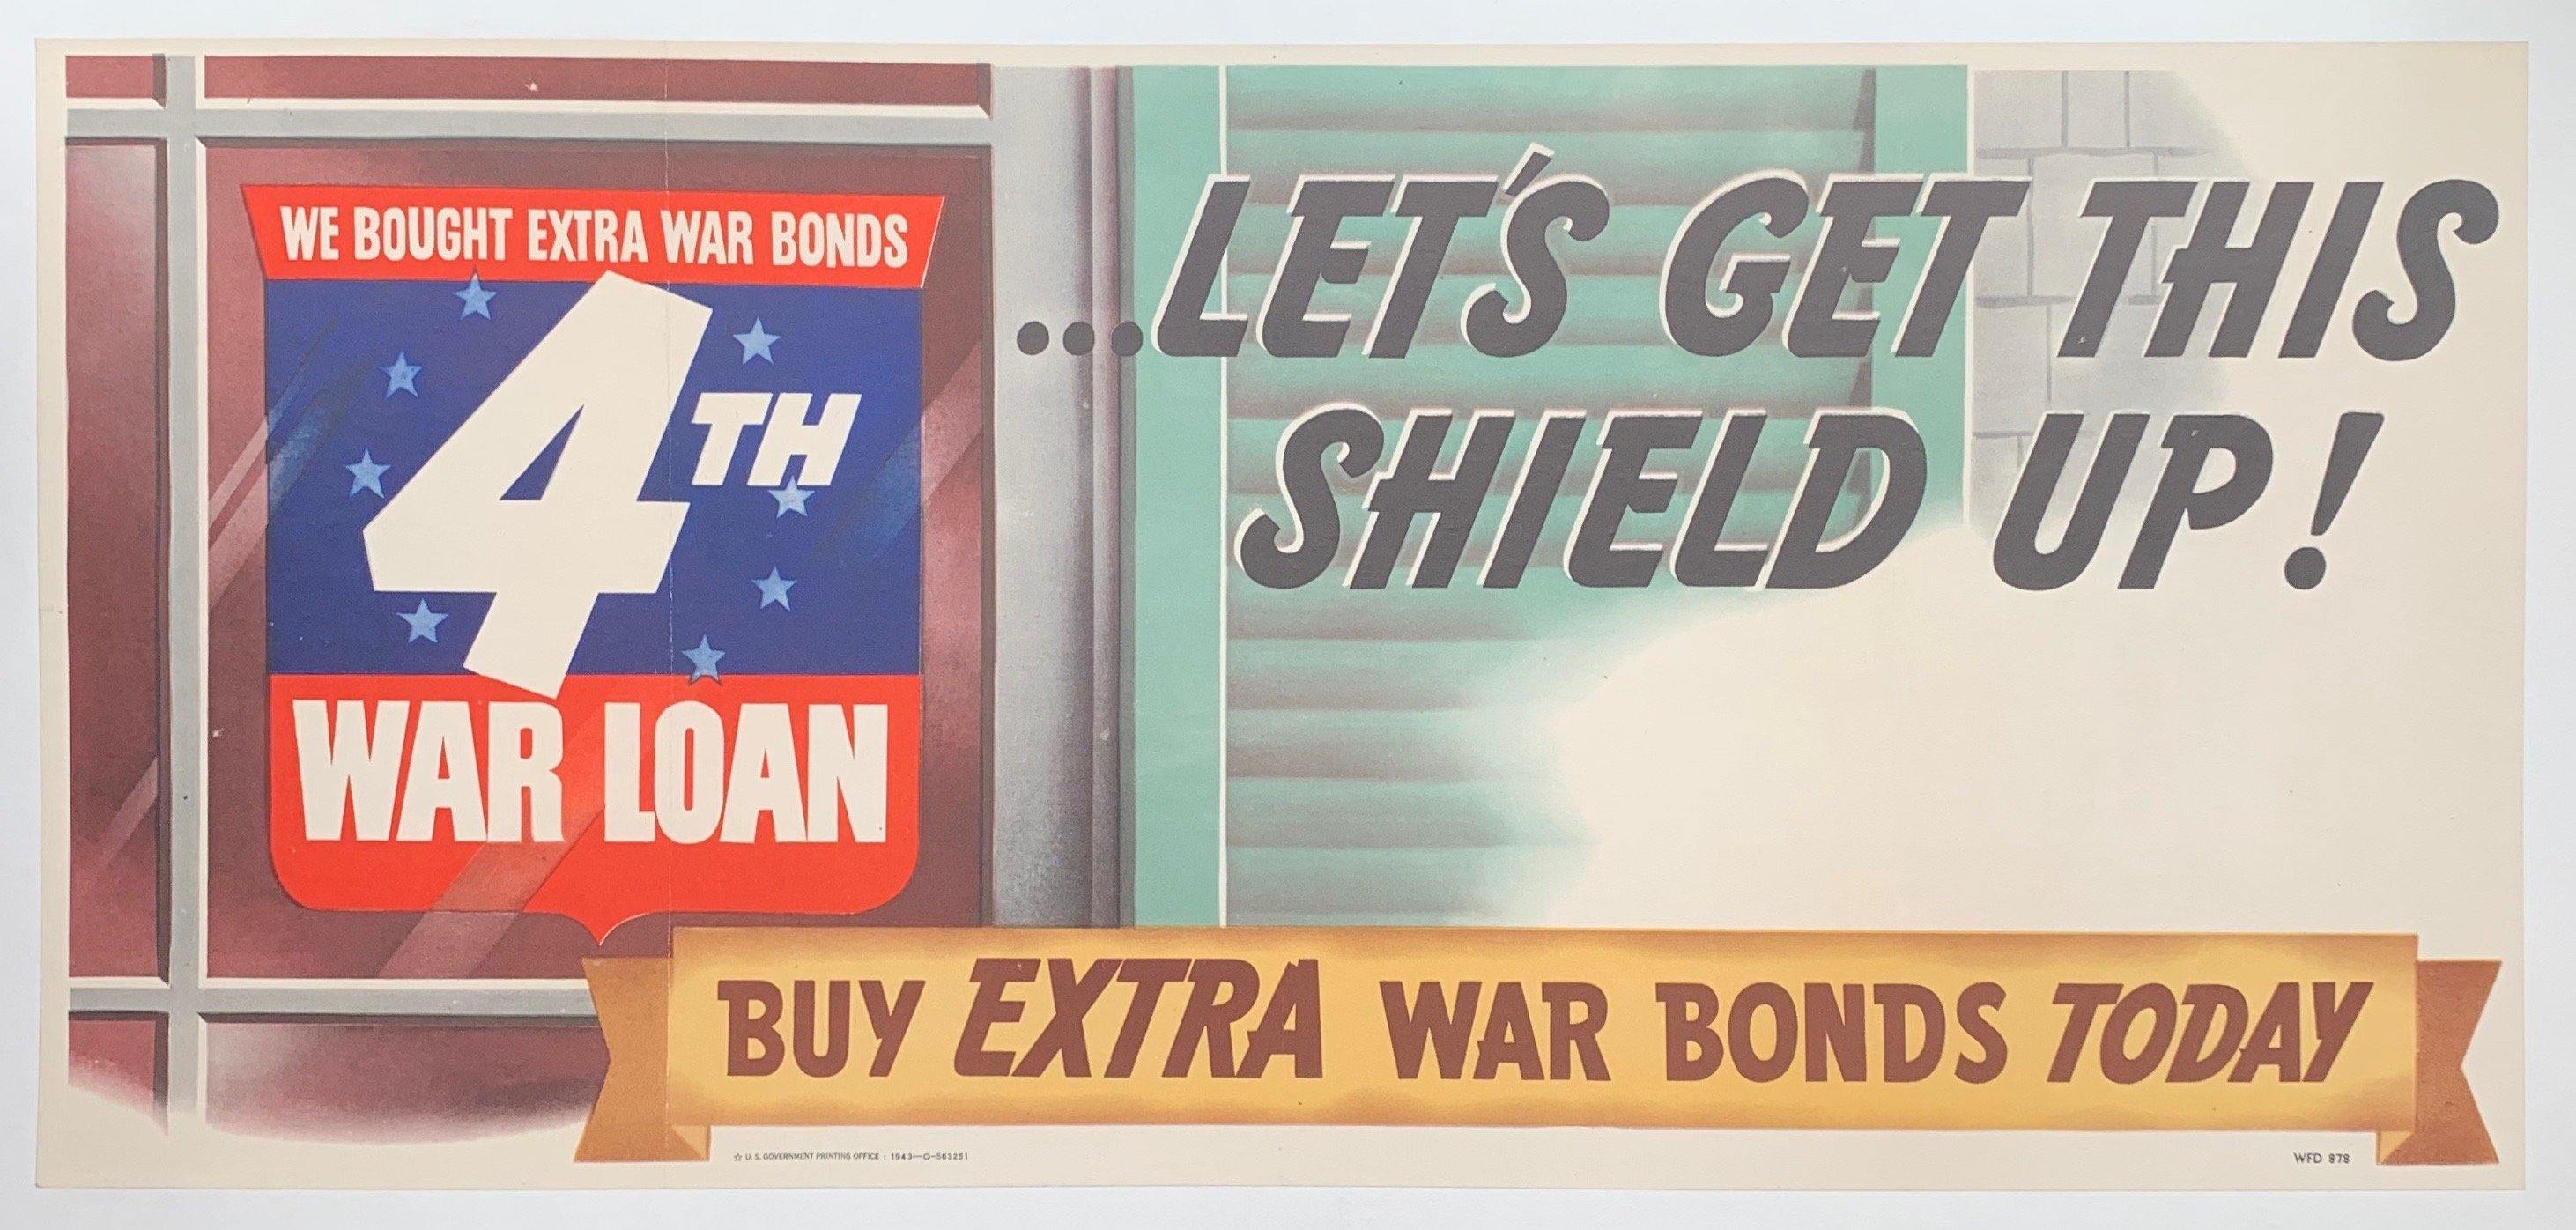 We Bought Extra War Bonds 4th War Loan. Let's Get This Shield Up! - Poster Museum